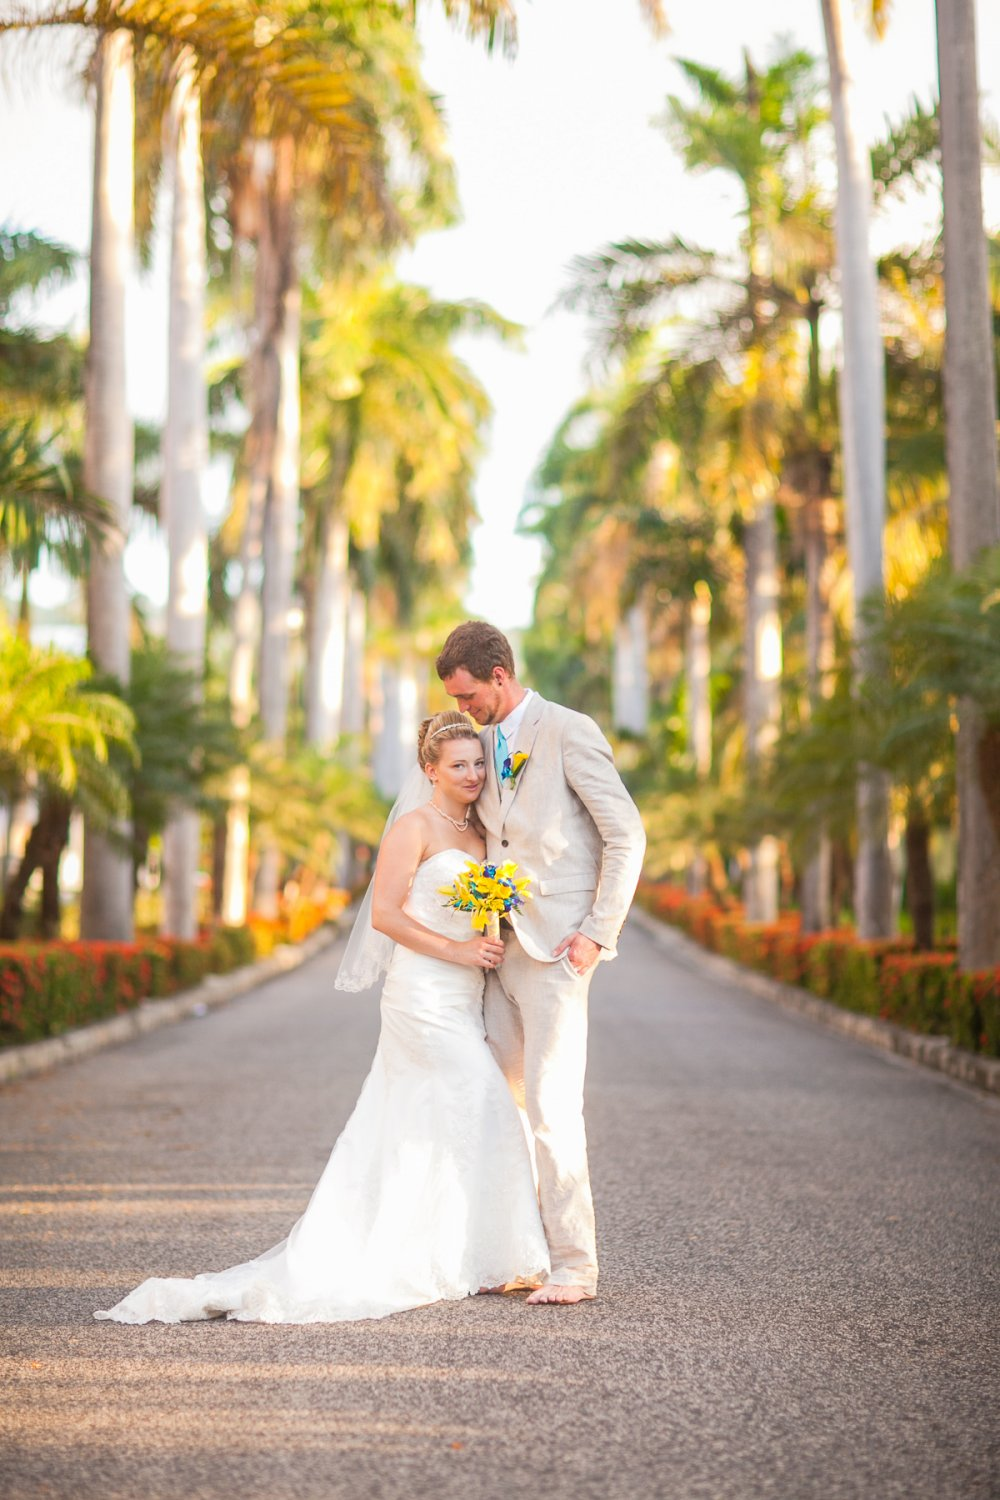 JF Hannigan Wedding Photography: Kat and Dan: a jamaican getaway 32